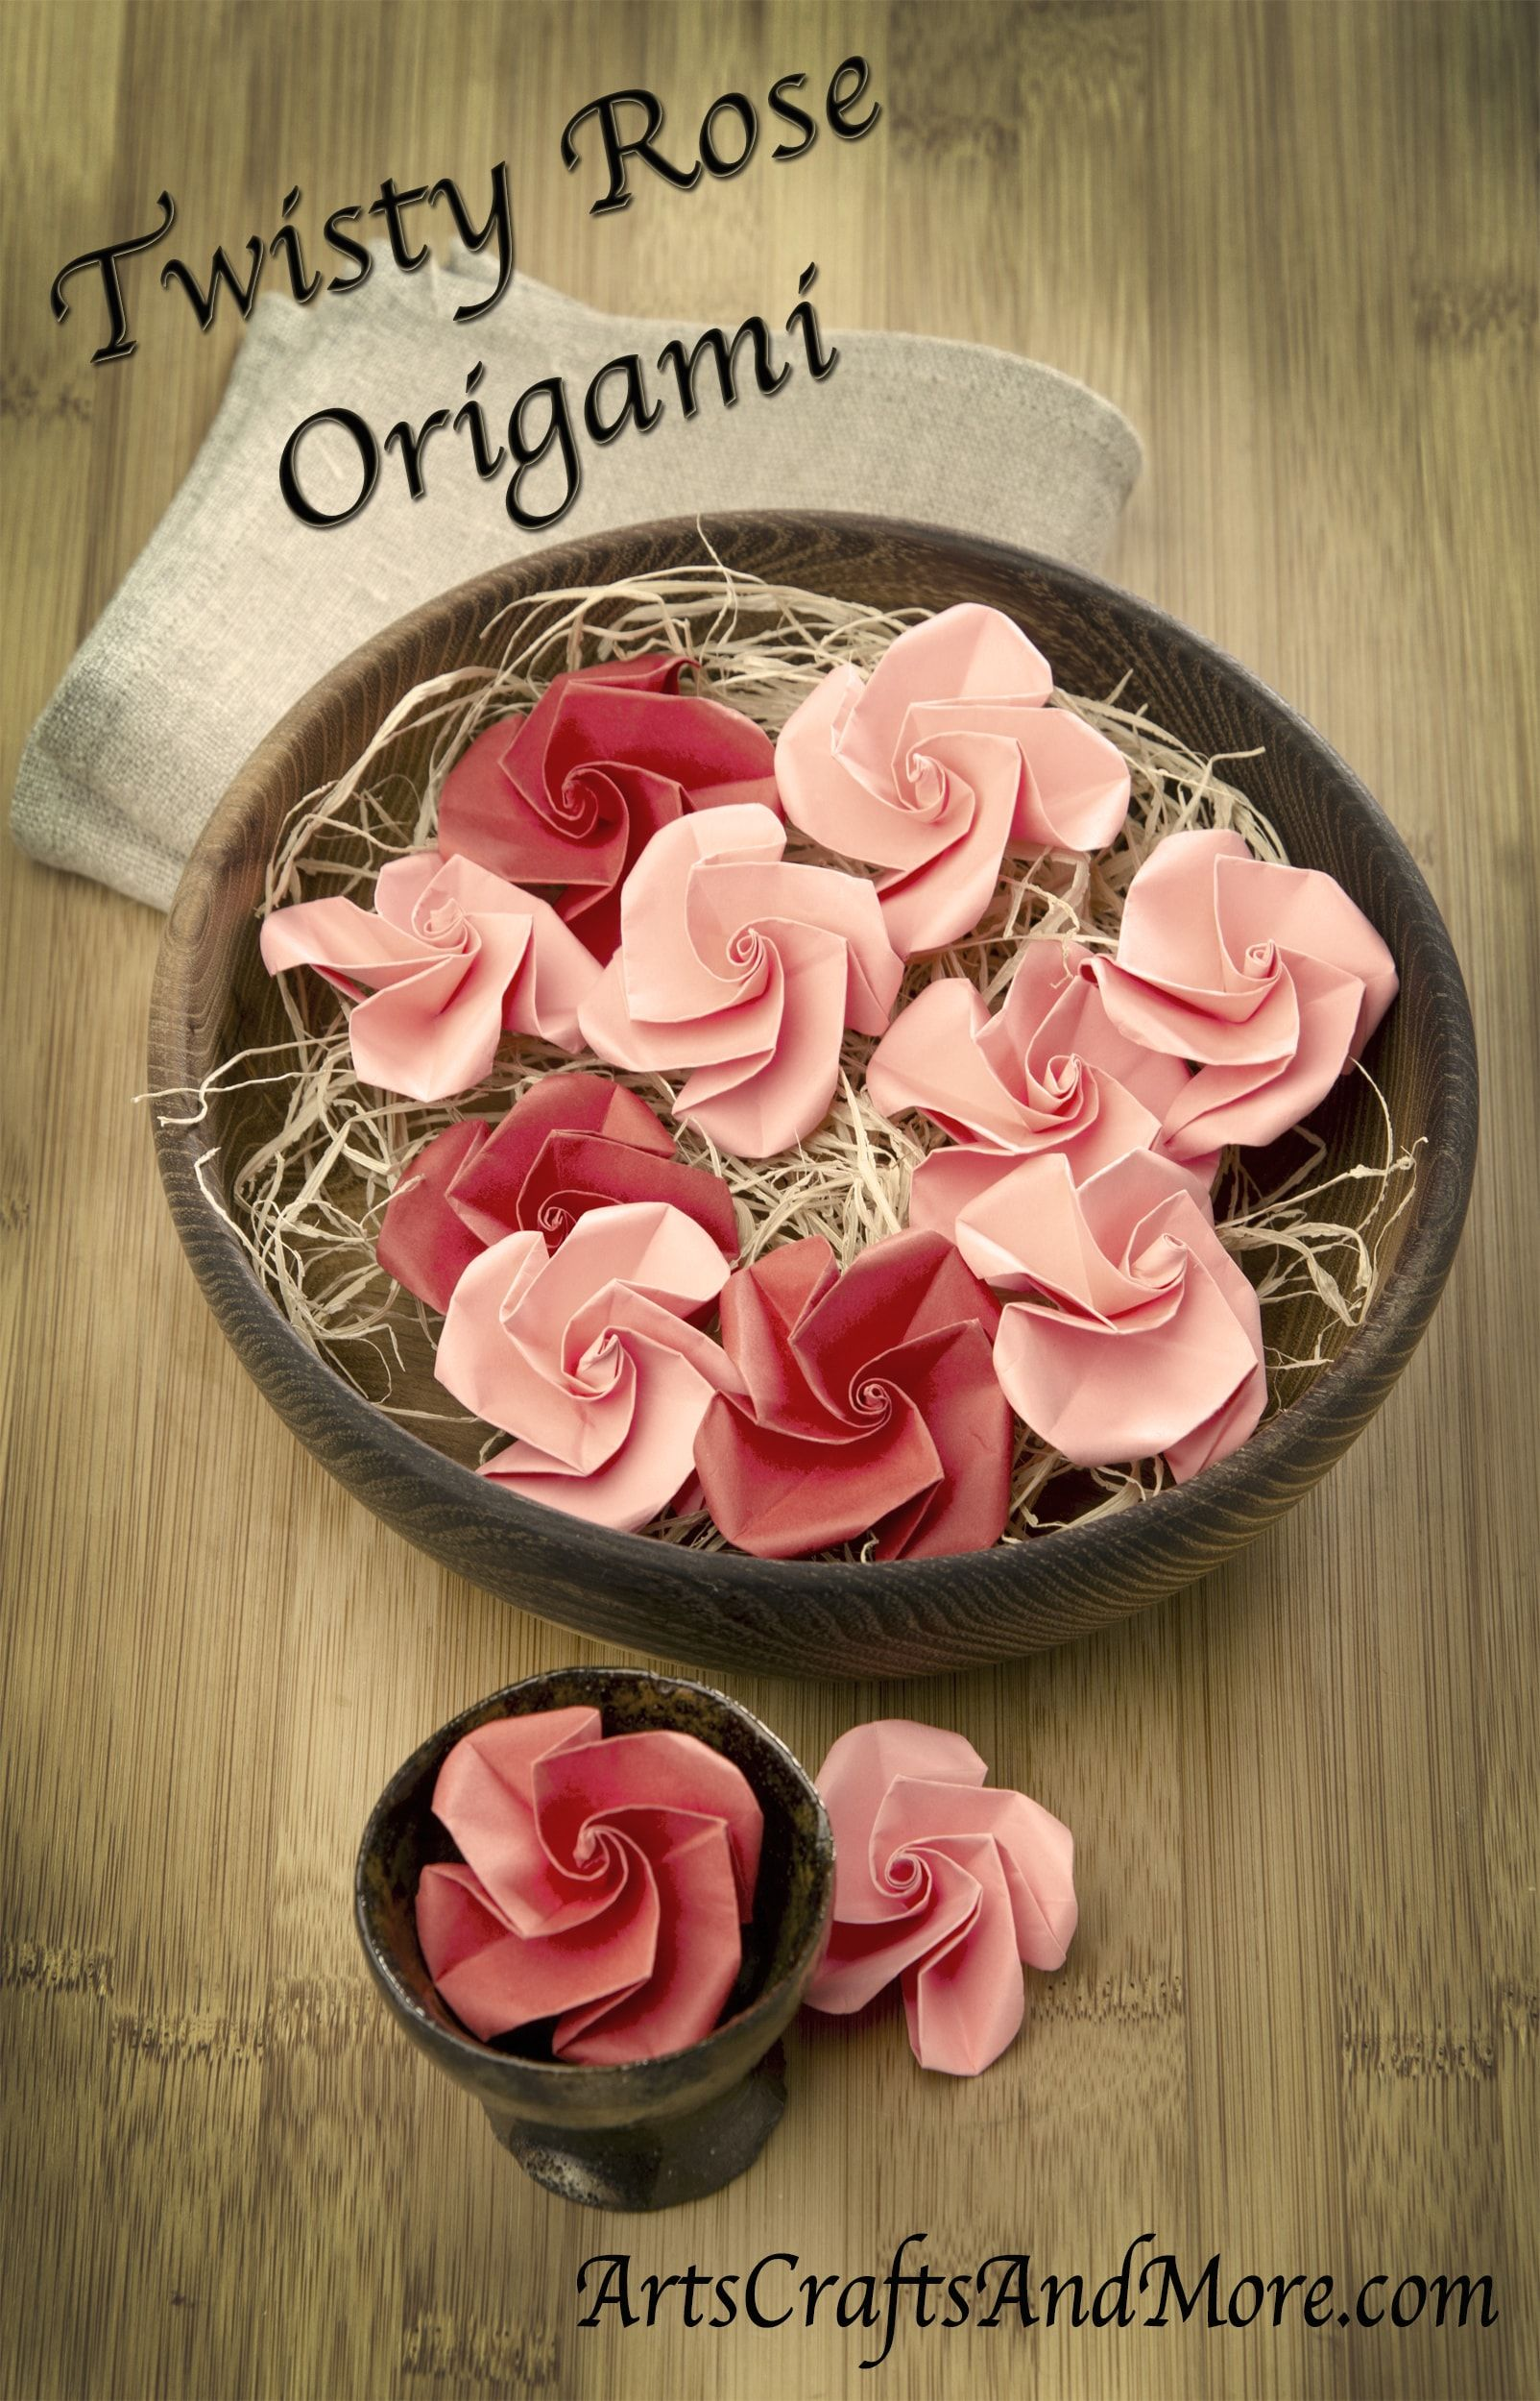 Twisty Rose Origami. Check out this step-by-step tutorial ... - photo#31